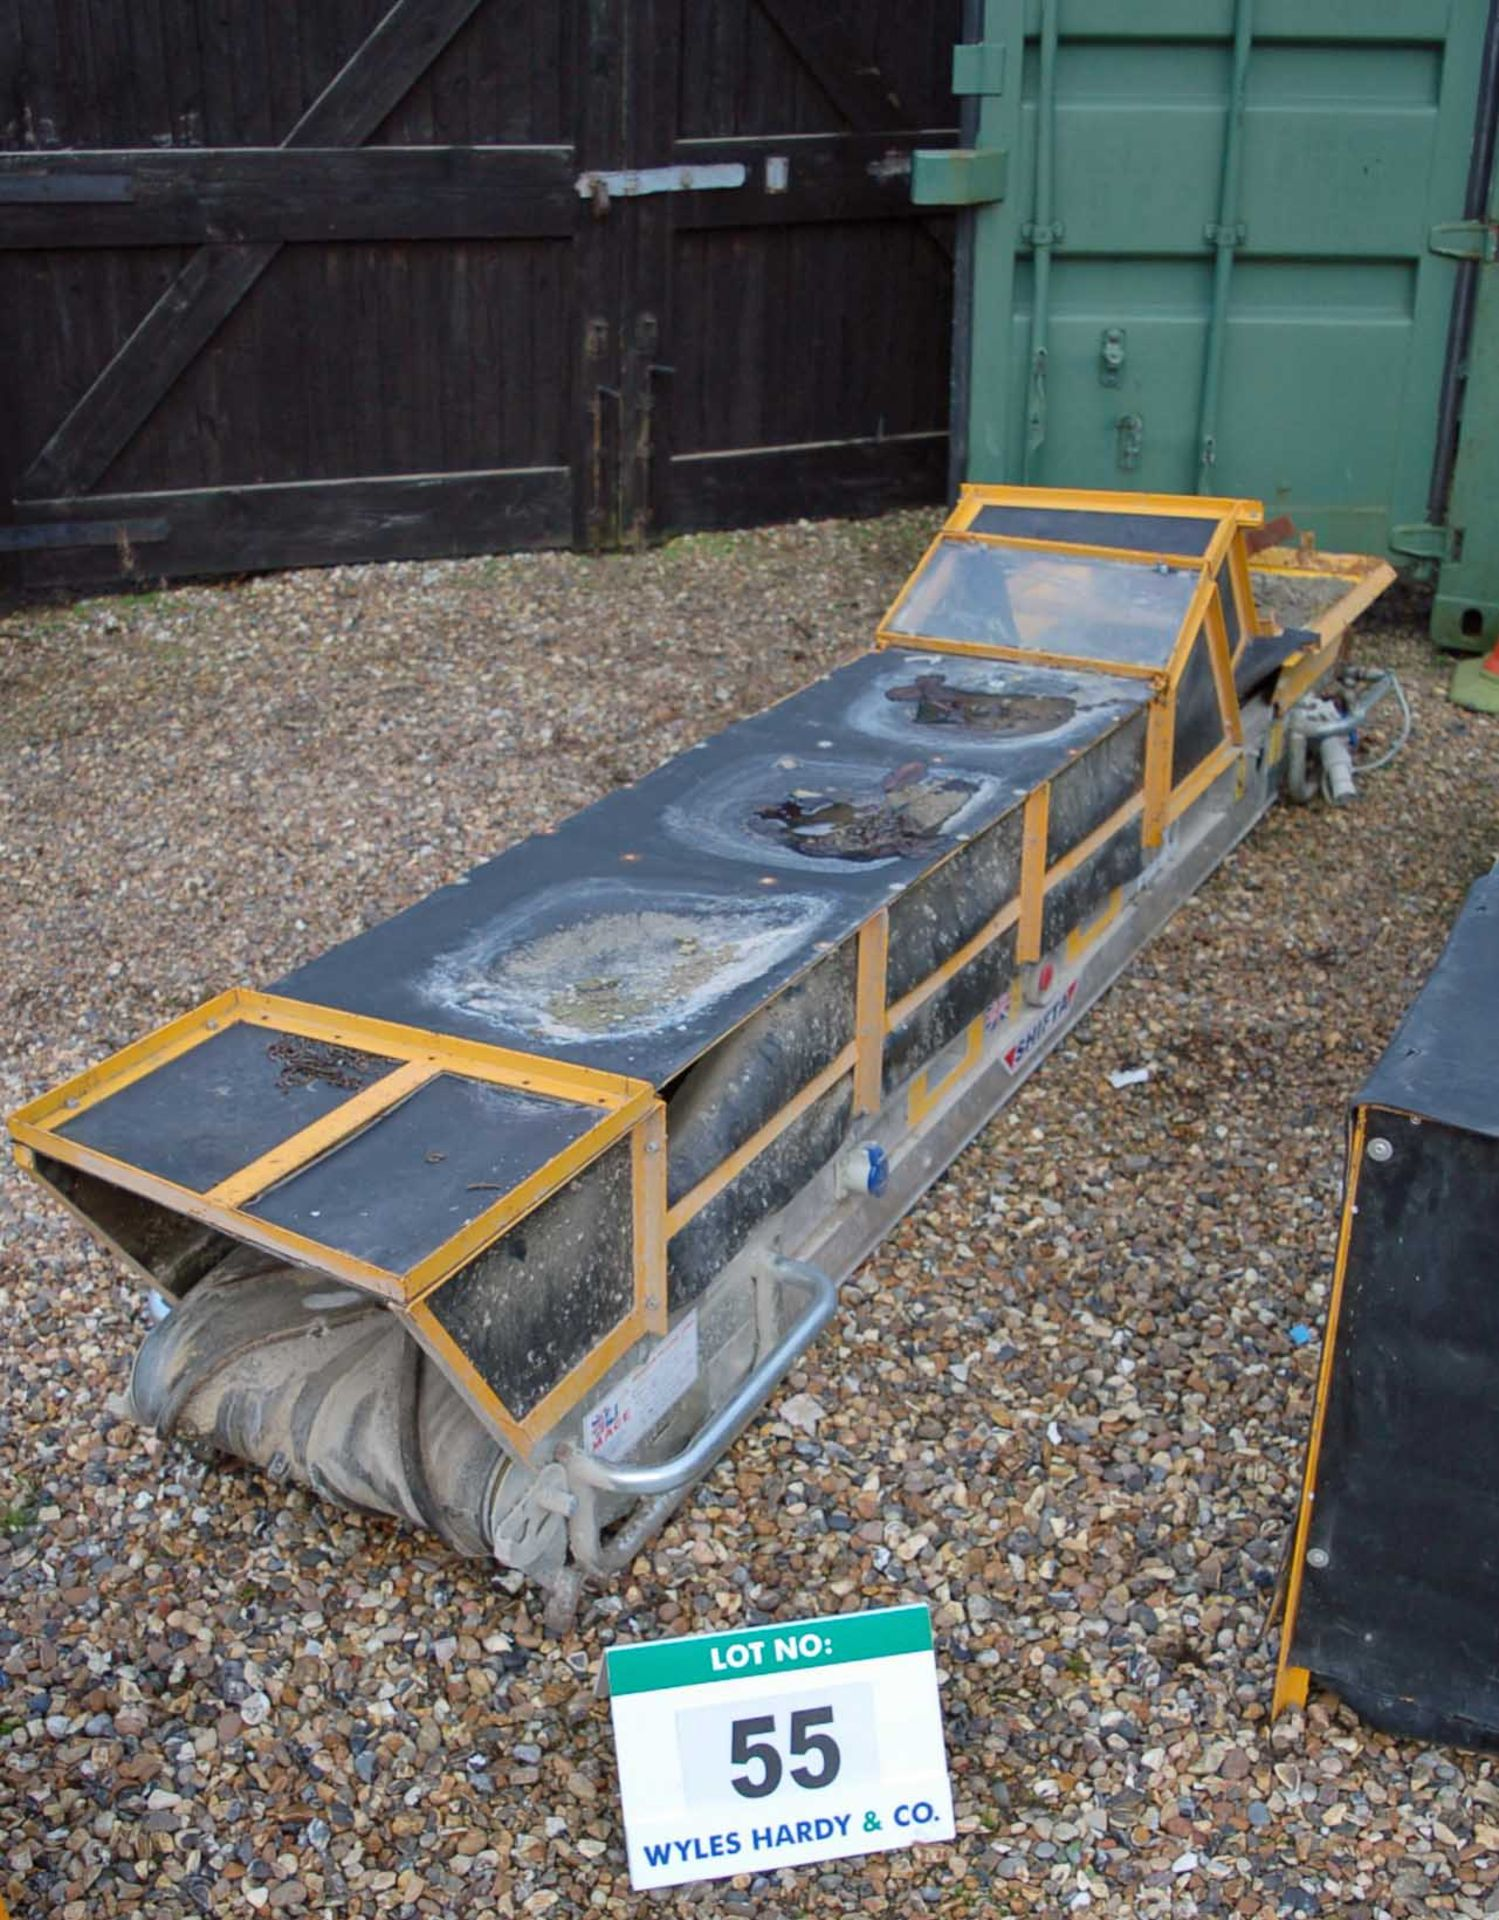 Lot 55 - A MACE SHIFTA 3.2 Approximately 3.2 Meter x 450MM Electric Rubber Troughed Conveyor (110V).